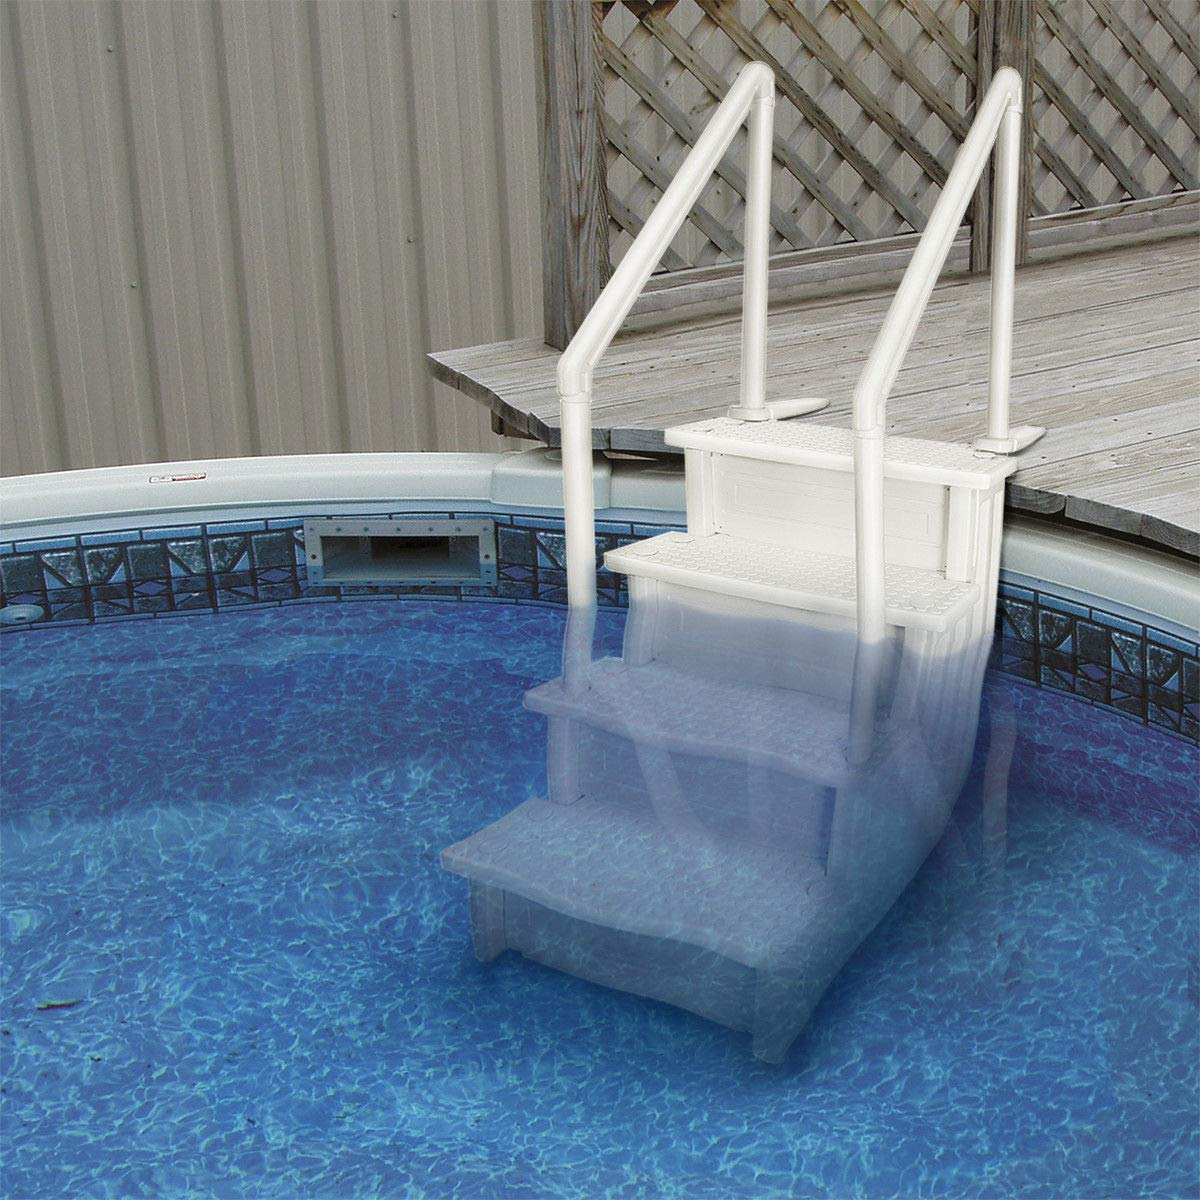 Amazon com : 9TRADING Above Ground Swimming Pool Ladder Heavy Duty